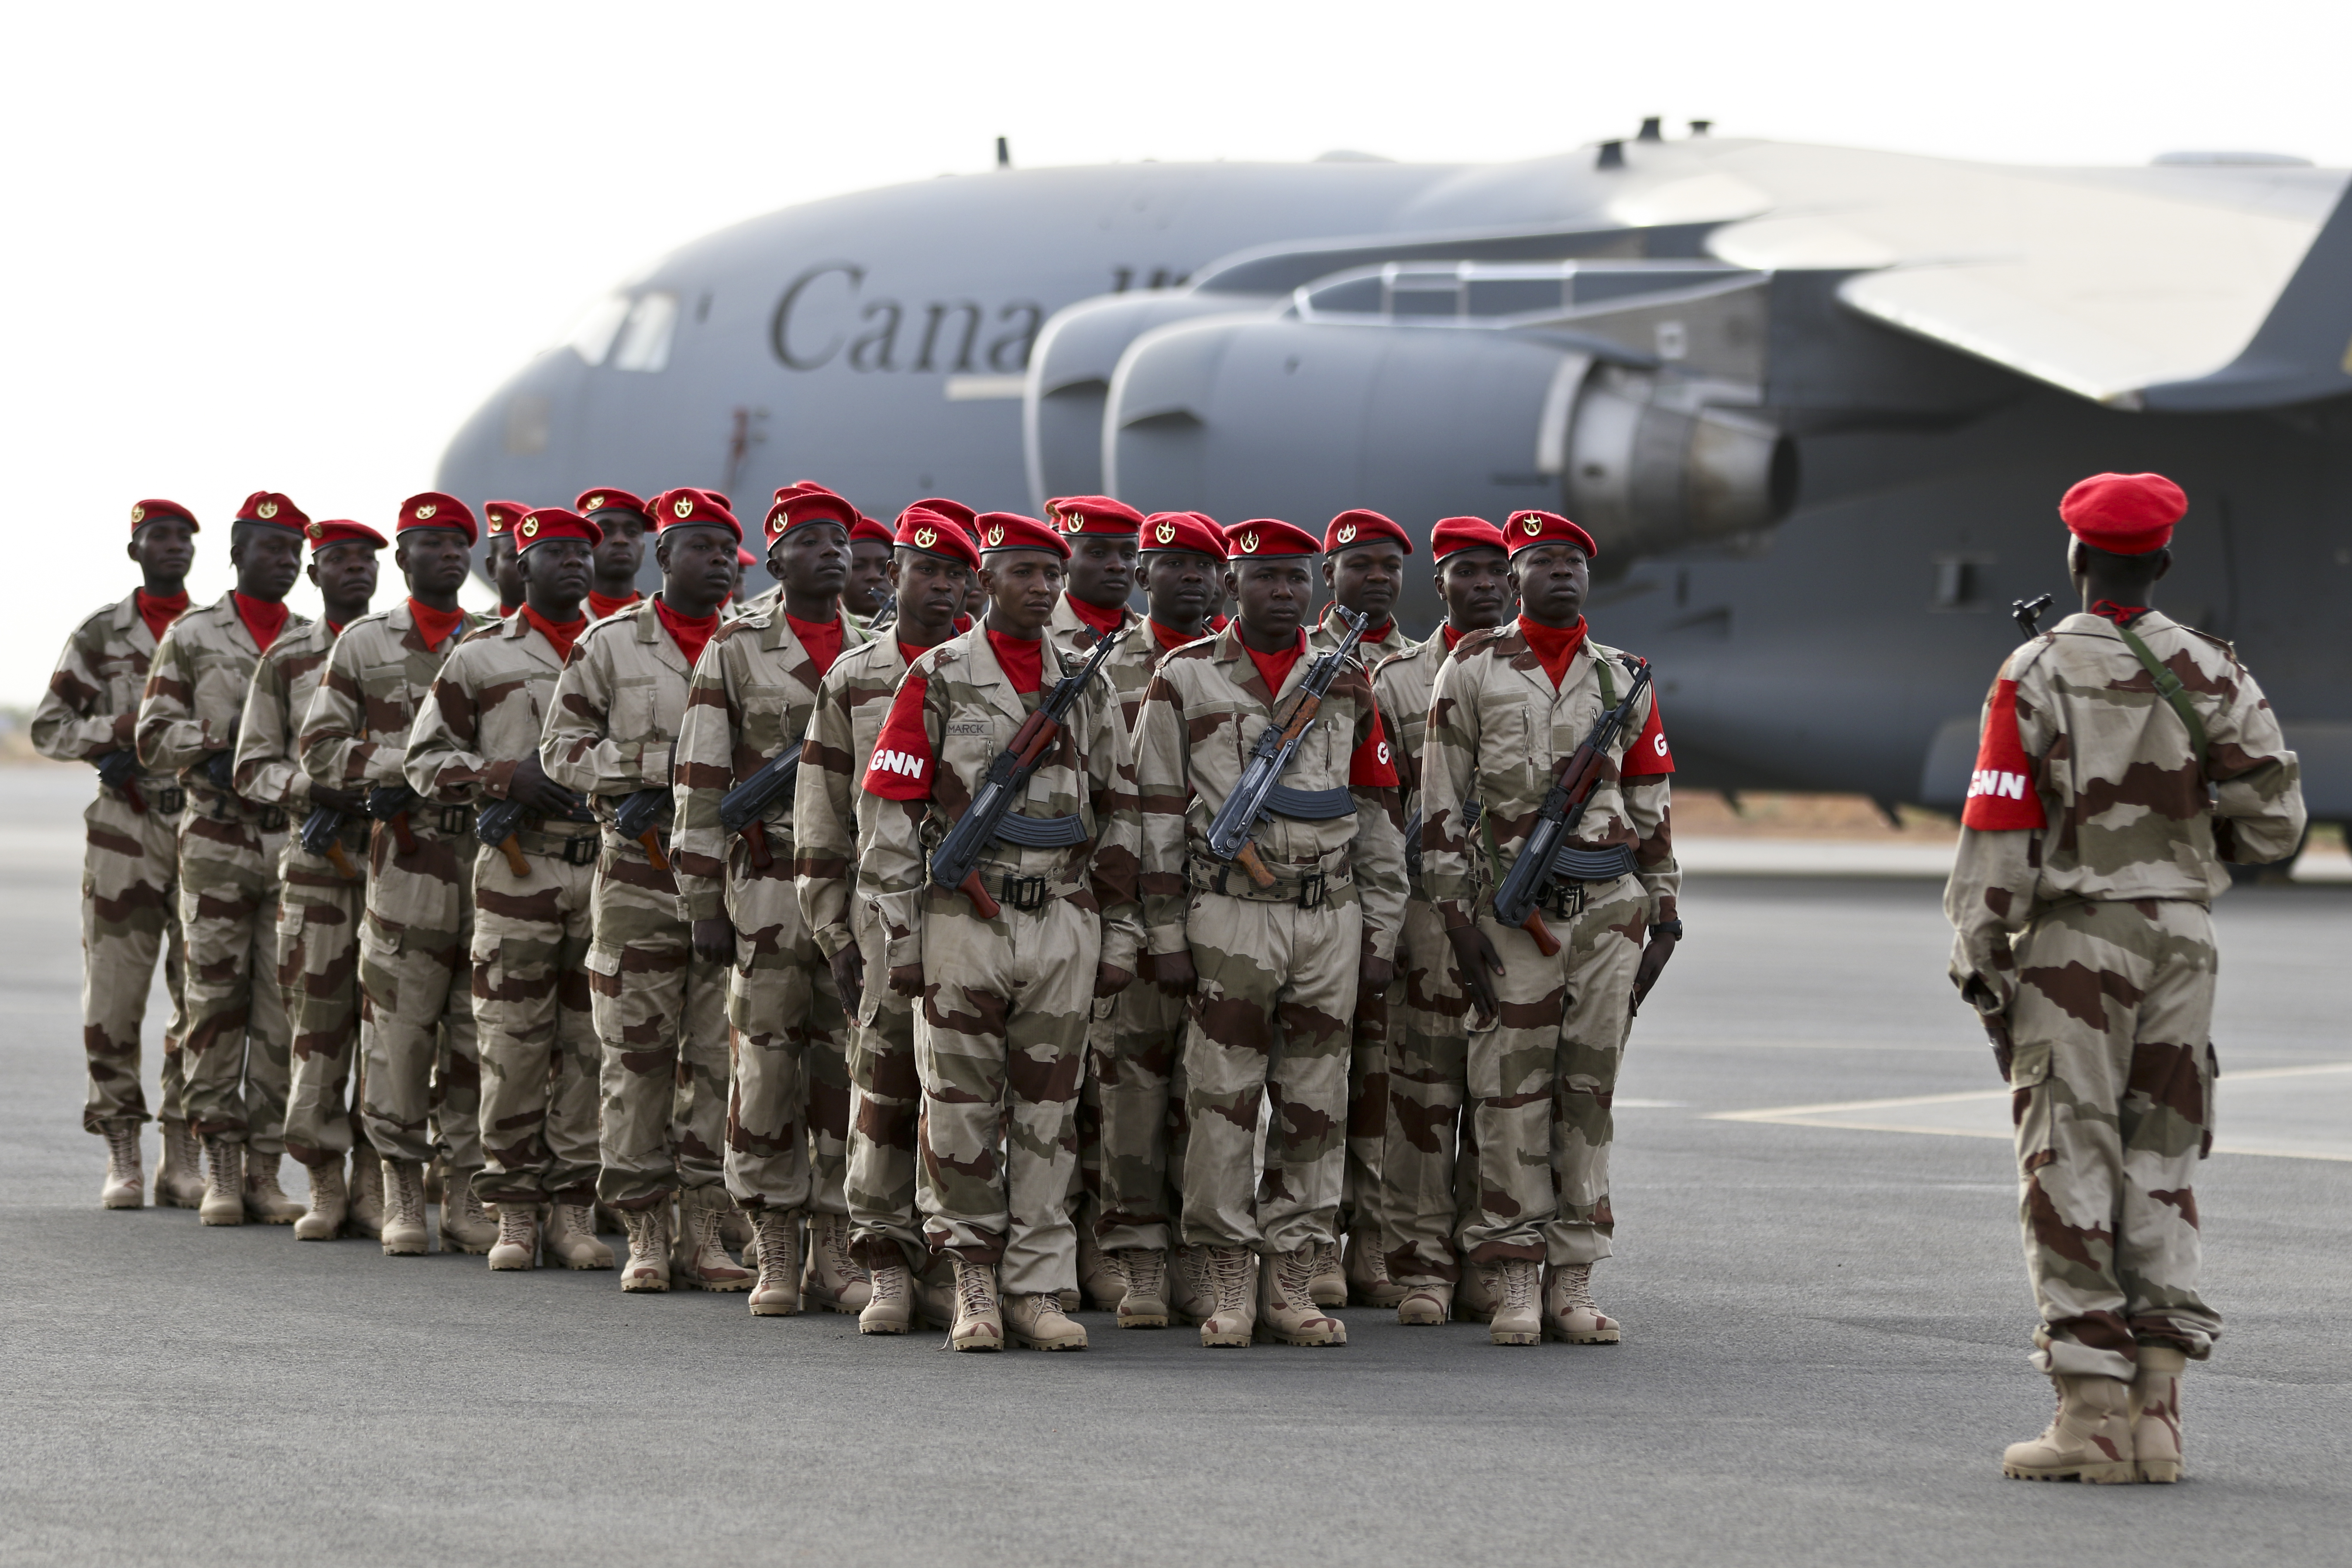 NIAMEY, Niger – Nigerien troops stand in formation prior to the start of the opening ceremony of Flintlock 2018 in Niamey, Niger, April 11, 2018. Flintlock is an annual, African-led, integrated military and law enforcement exercise that has strengthened key partner nation forces throughout North and West Africa as well as western Special Operations Forces since 2005. (U.S. Army Photo by Sgt. Heather Doppke/79th Theater Sustainment Command)